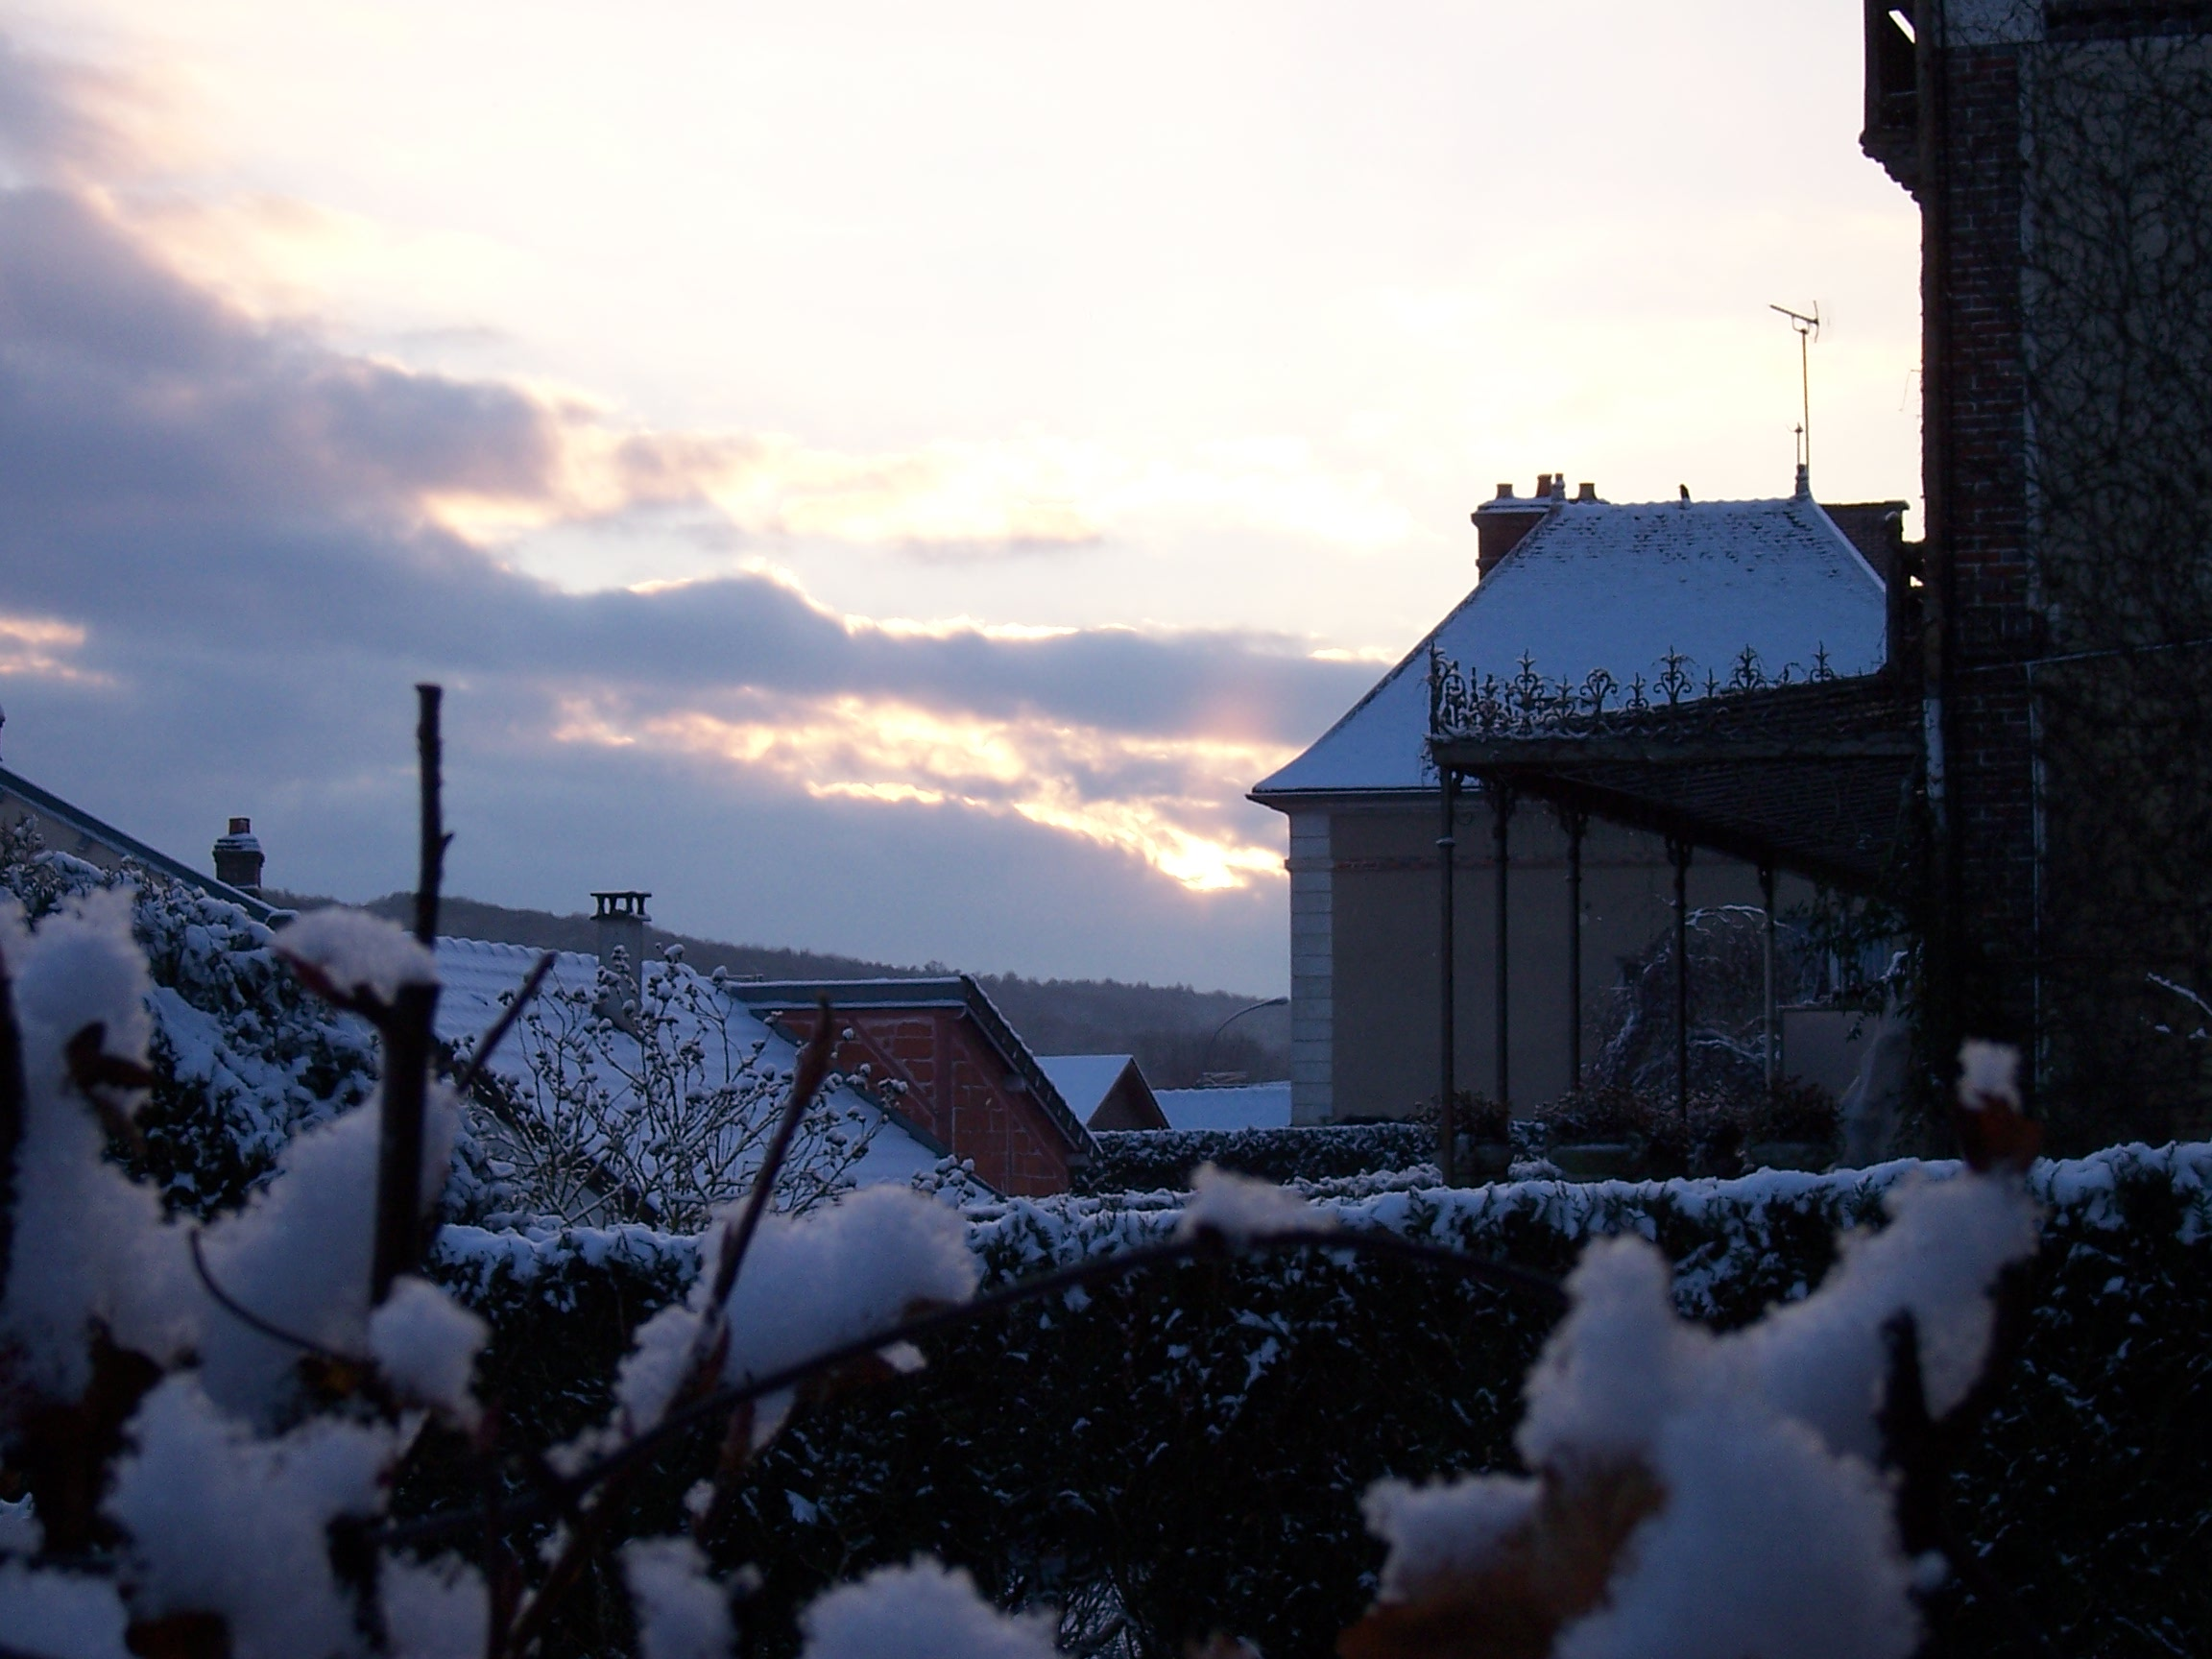 Winter morning, Homes, Houses, Morning, Snow, HQ Photo